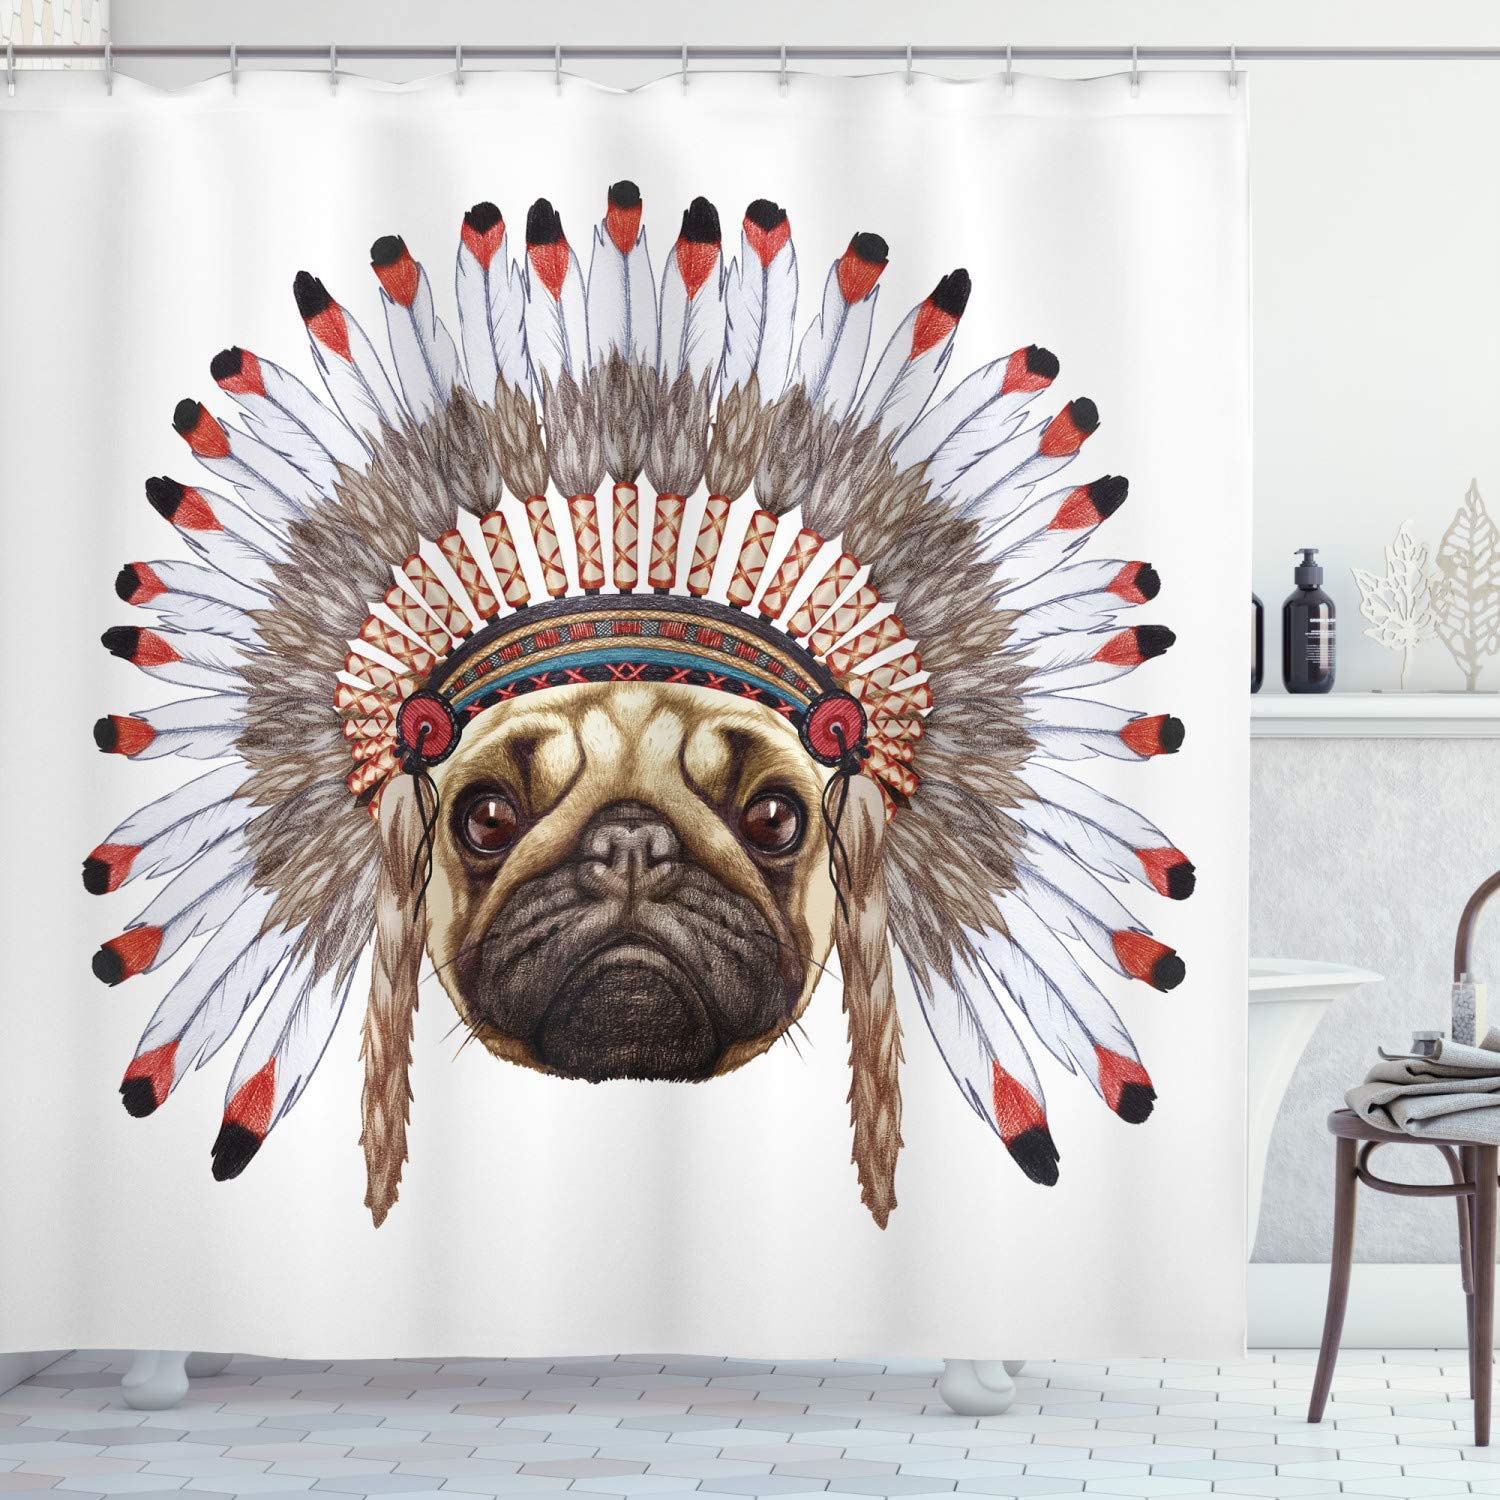 Amazon Com Ambesonne Pug Shower Curtain Portrait Of A Dog Native With Bonnet Hand Drawn Illustration Of Fun Animals Design Fabric Bathroom Decor Set With Hooks 84 Long Extra Red Black Tan Home